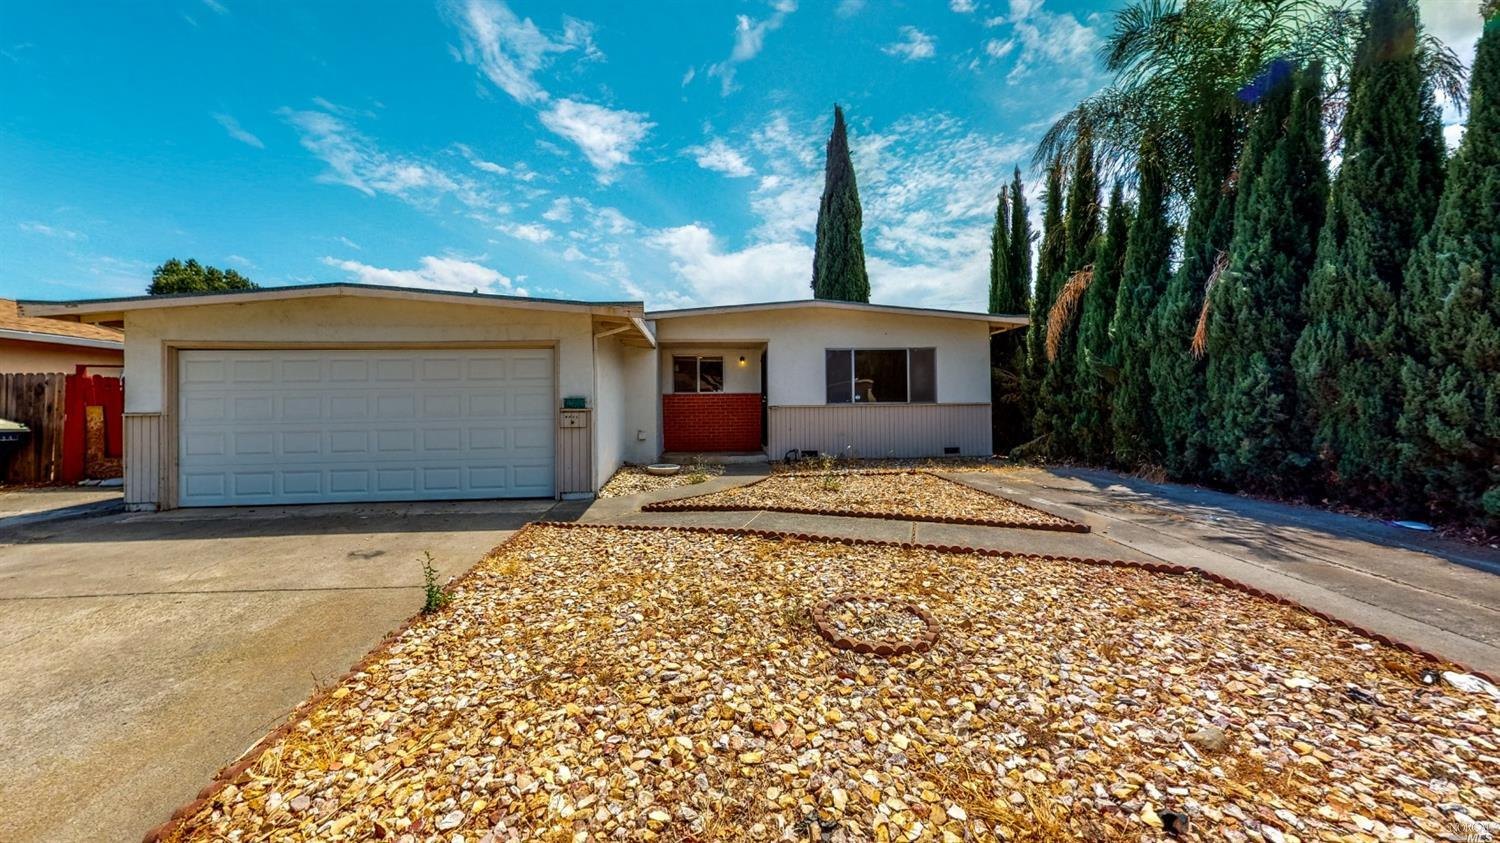 Affordable 3 bedroom 2 full baths starter home in Fairfield close to freeways and shopping centers.